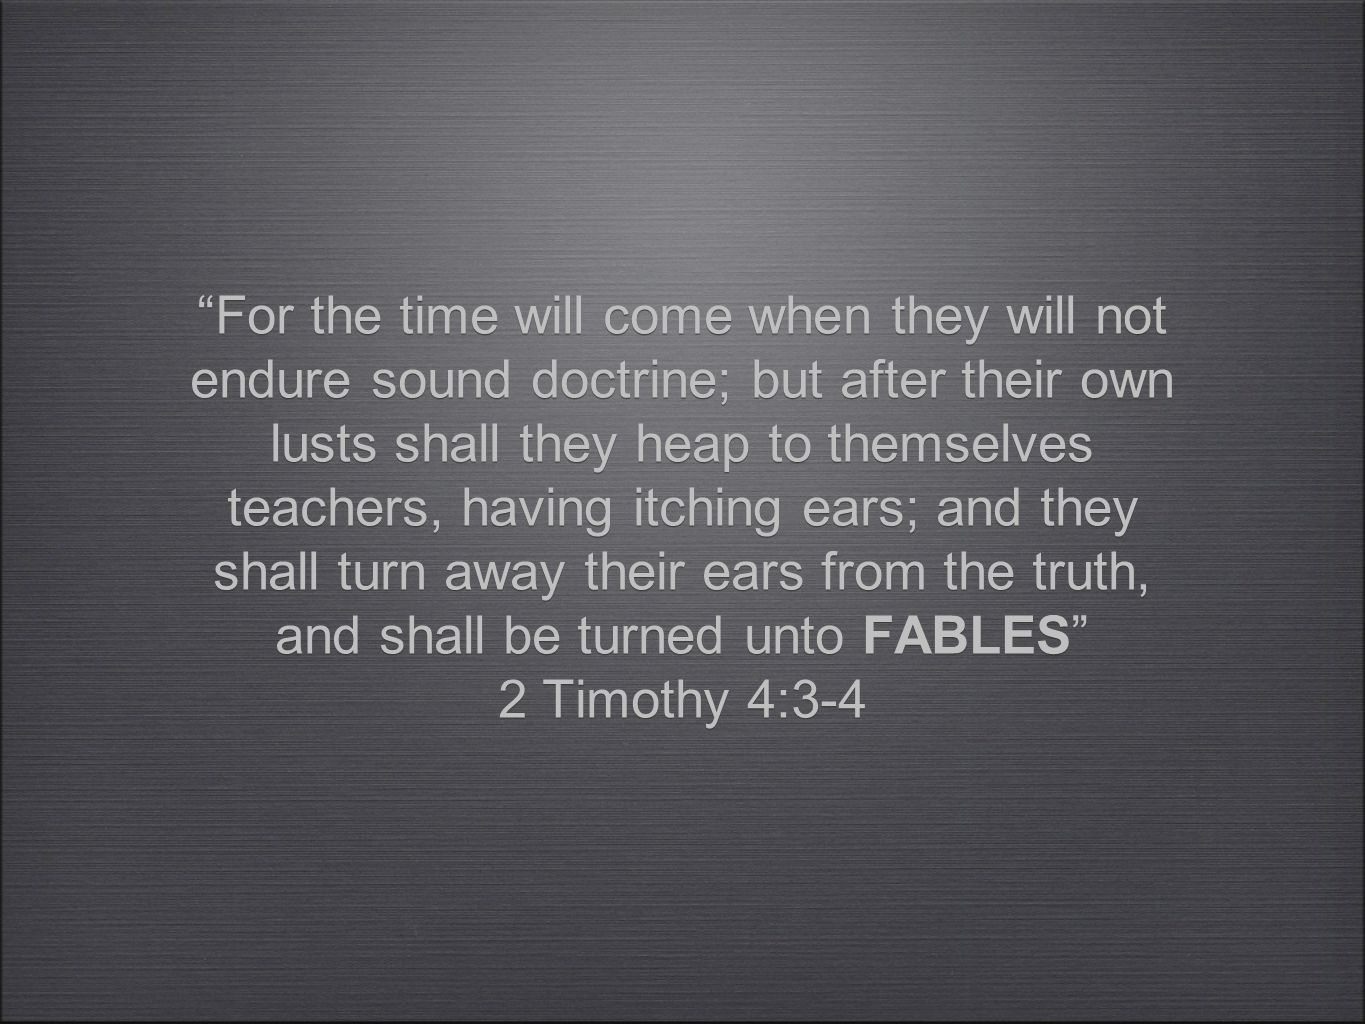 For the time will come when they will not endure sound doctrine; but after their own lusts shall they heap to themselves teachers, having itching ears; and they shall turn away their ears from the truth, and shall be turned unto FABLES 2 Timothy 4:3-4 For the time will come when they will not endure sound doctrine; but after their own lusts shall they heap to themselves teachers, having itching ears; and they shall turn away their ears from the truth, and shall be turned unto FABLES 2 Timothy 4:3-4